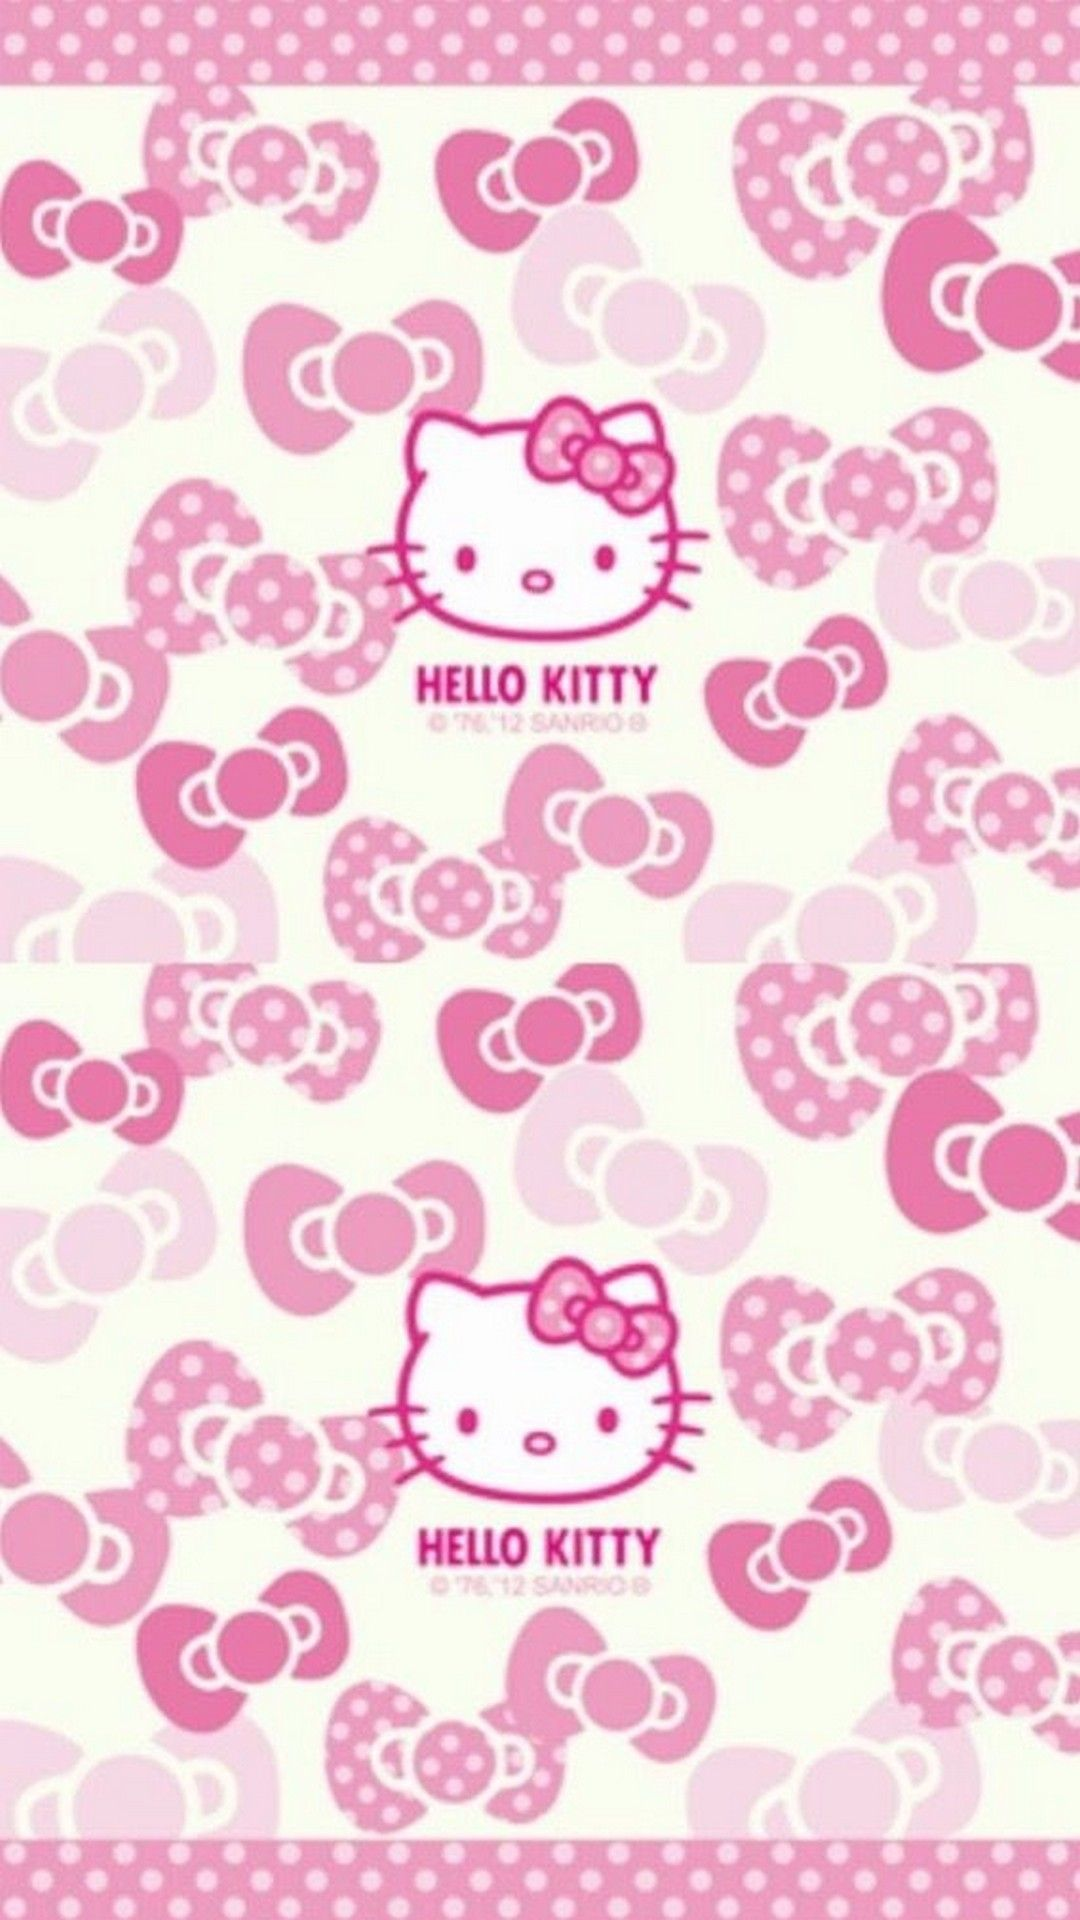 Hello Kitty Pictures iPhone 7 Wallpaper Hello kitty